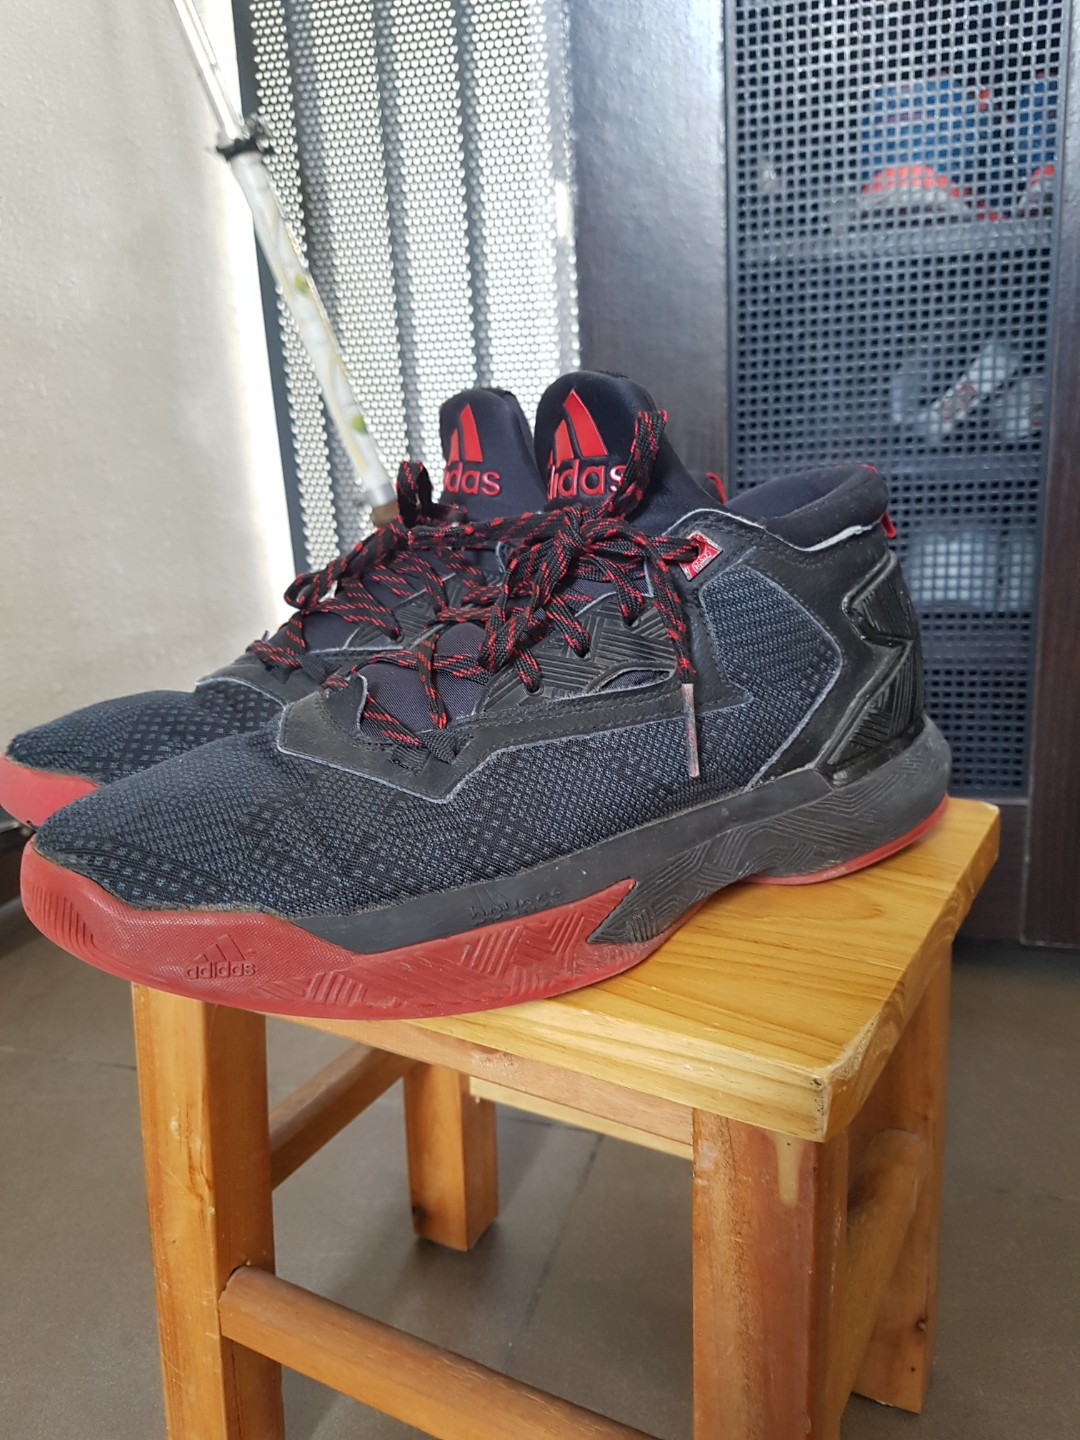 d69be4dce978 Adidas Dame Lillards 1.0 Red Black